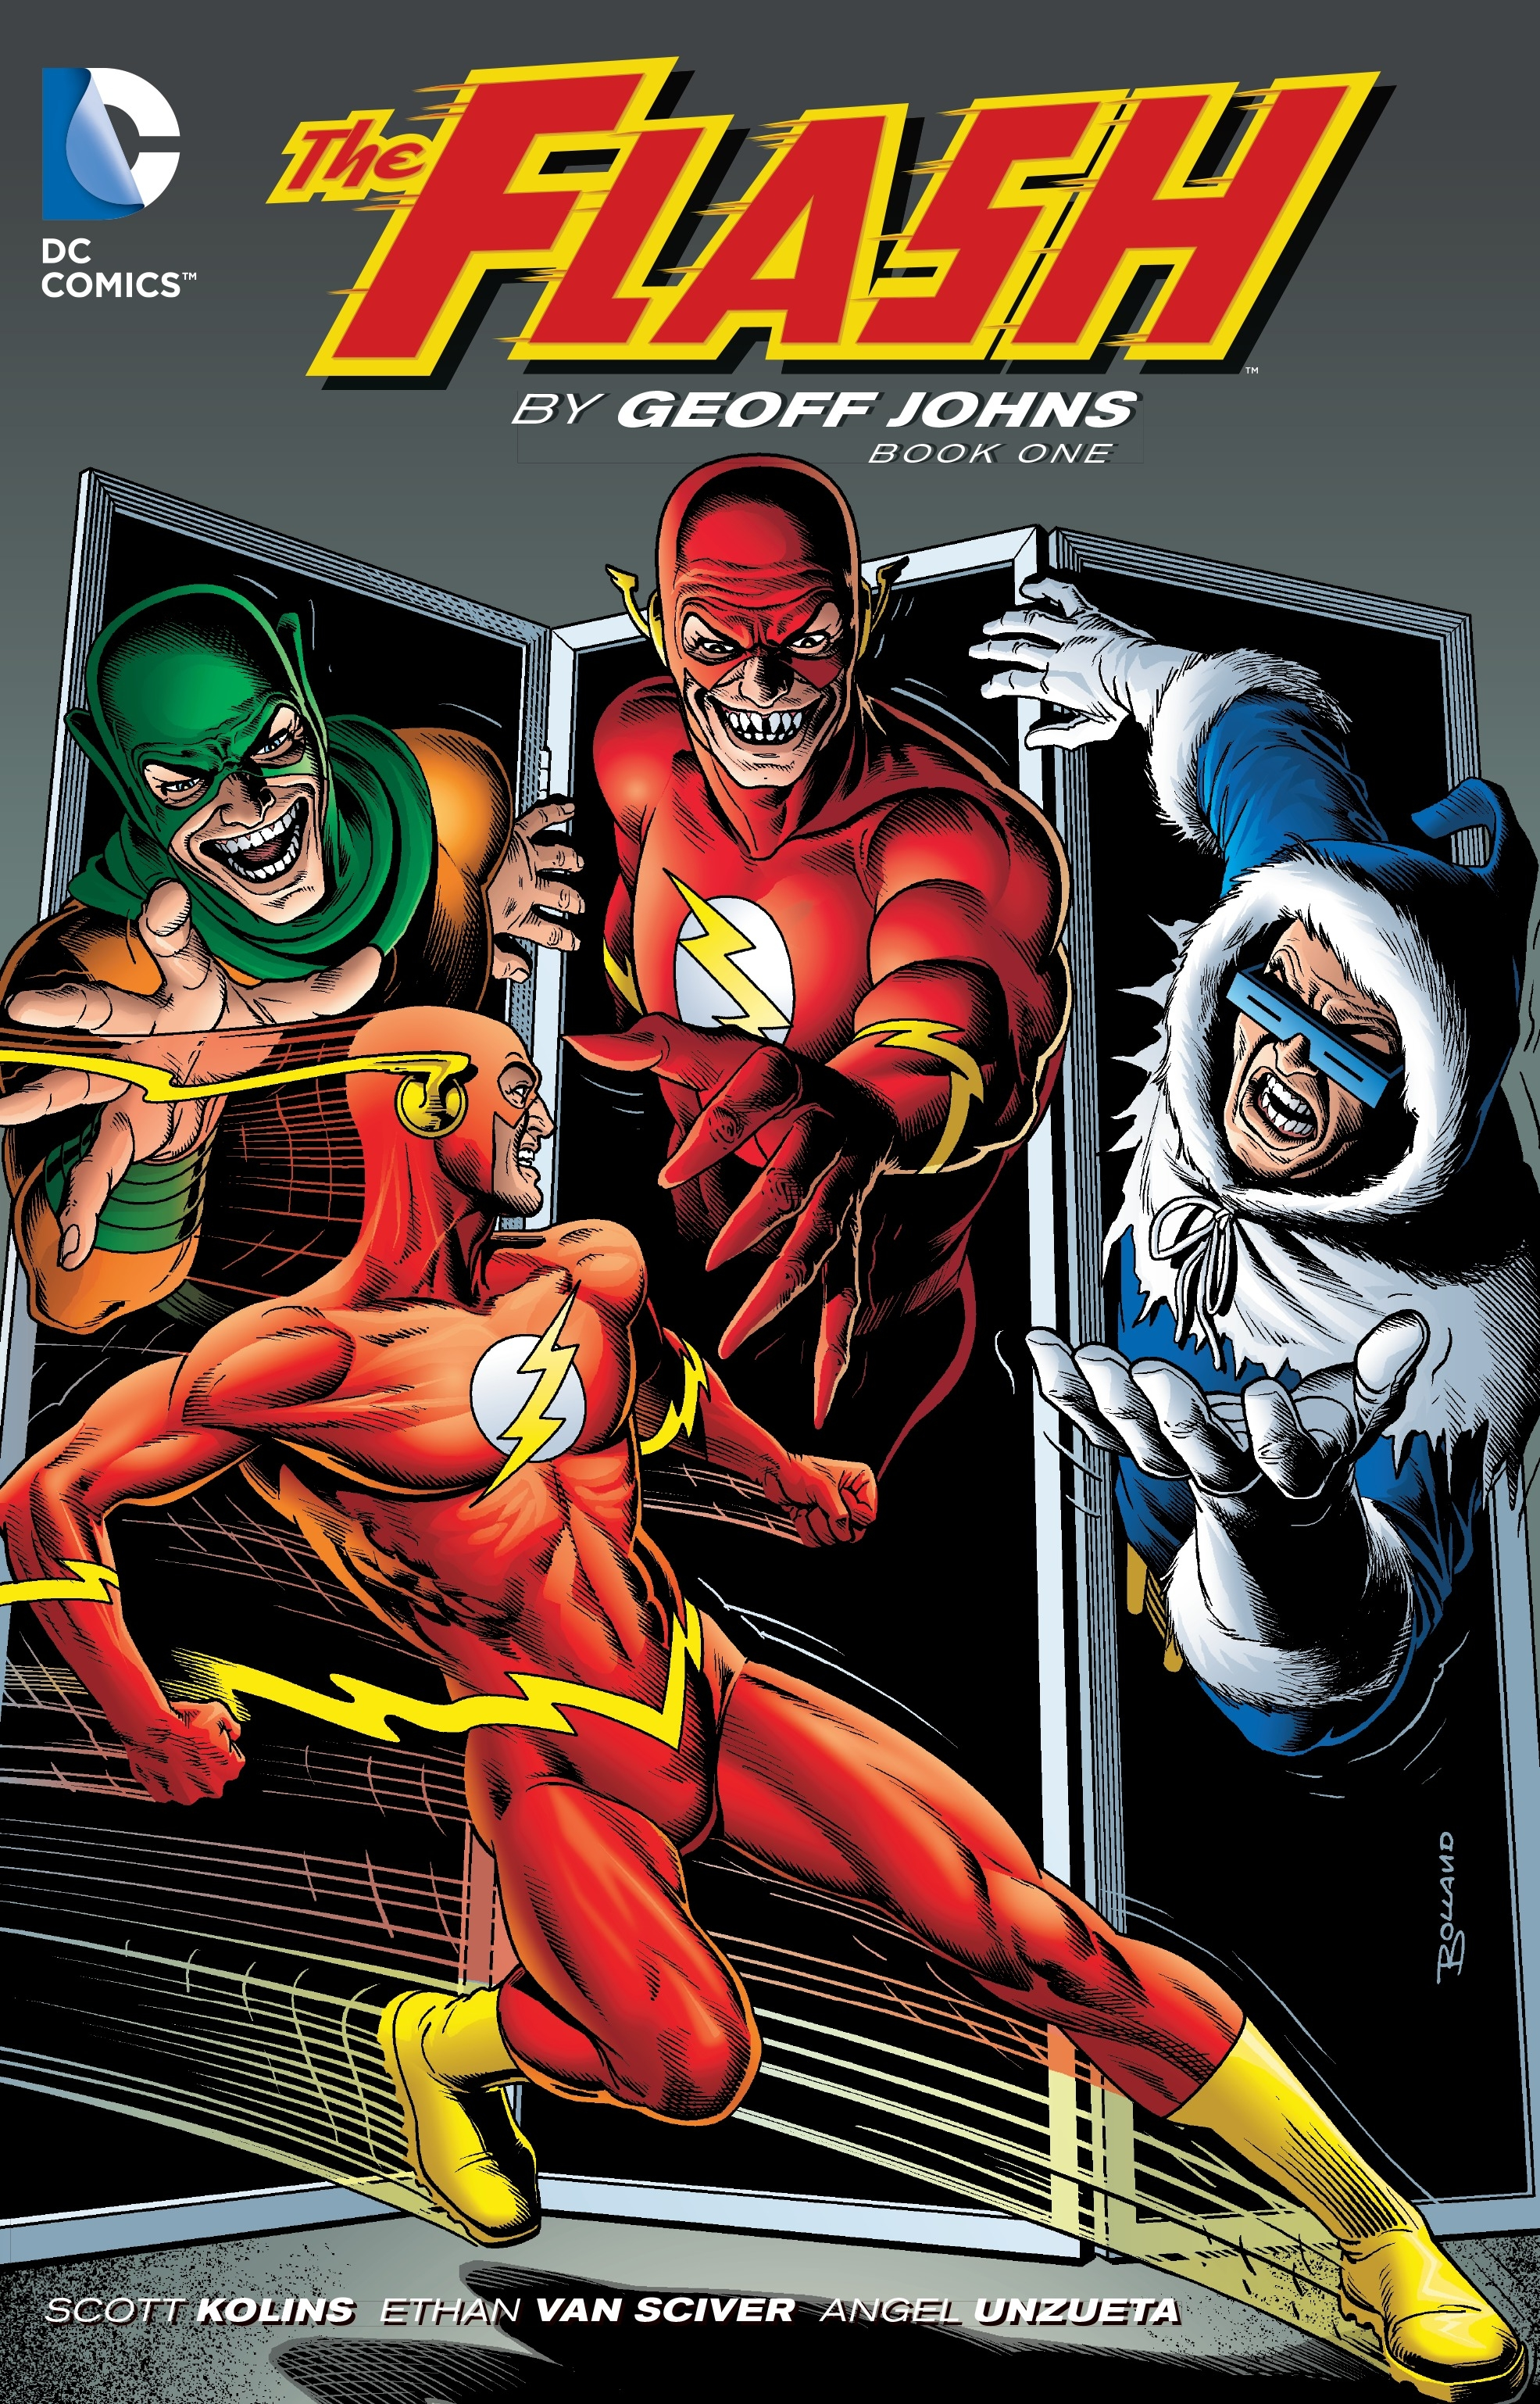 Cover Art for The Flash by Geoff Johns 1, ISBN: 9781401258733